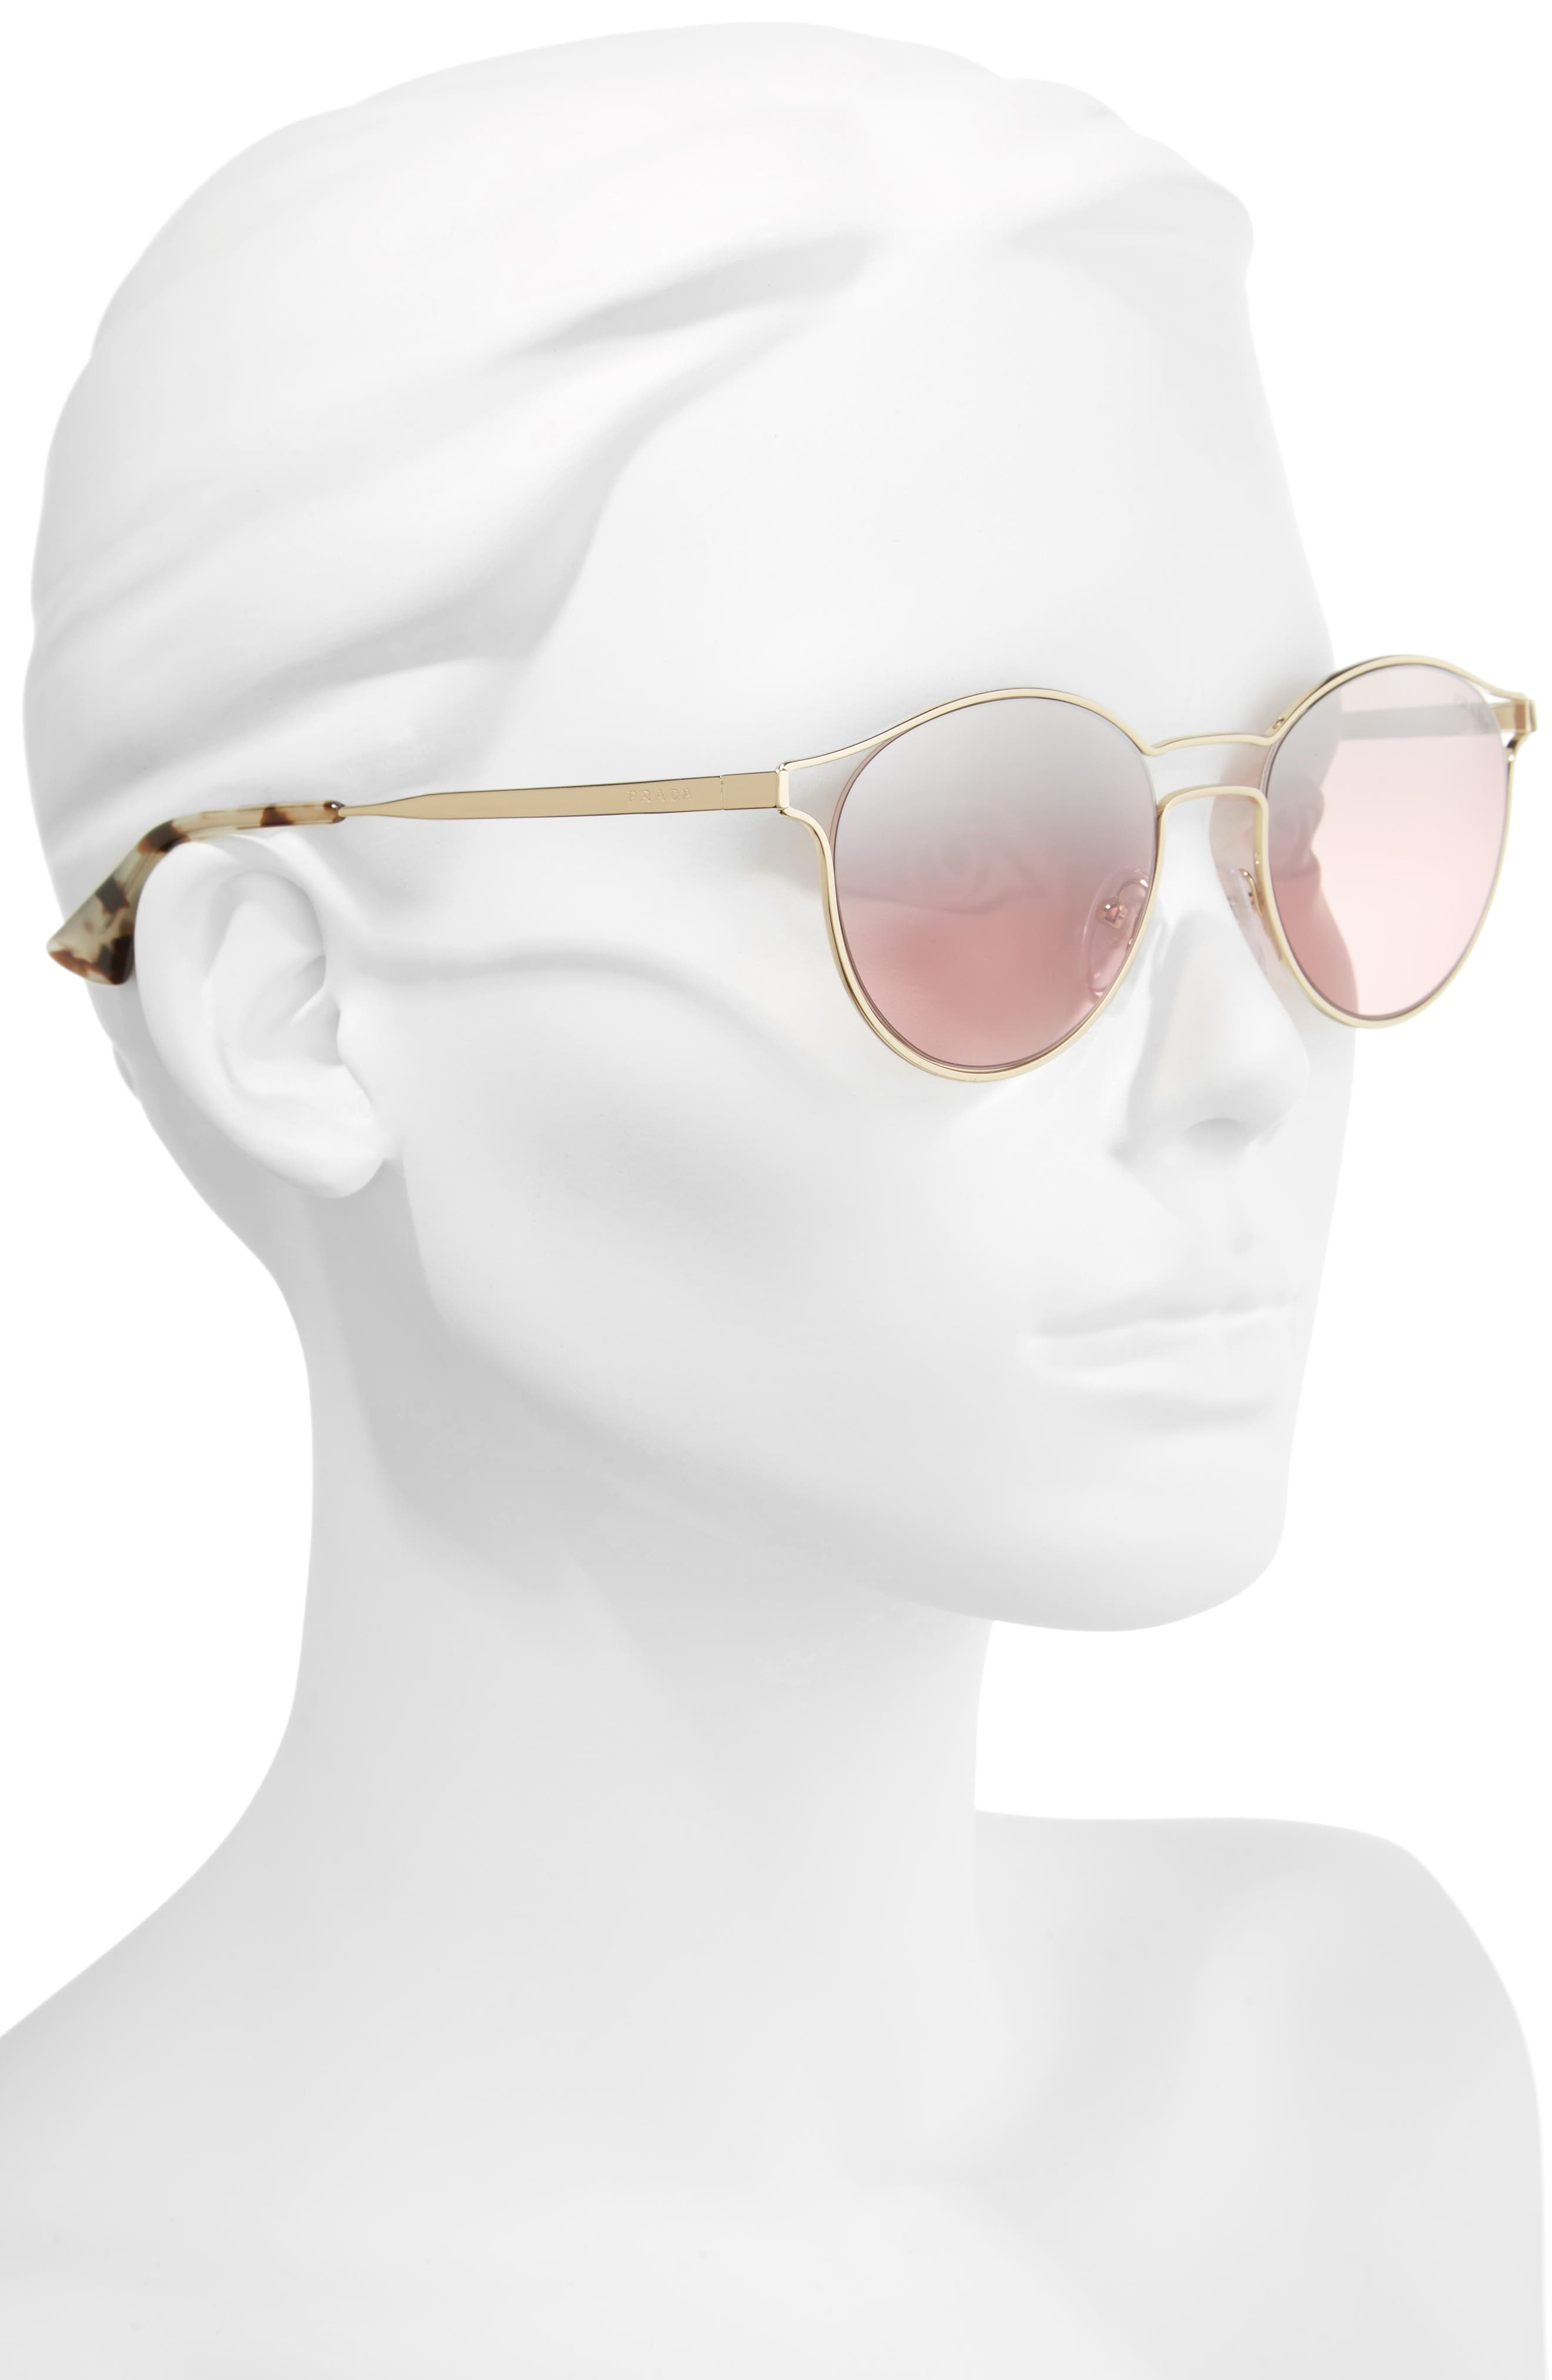 53mm Round Mirrored Sunglasses,                             Alternate thumbnail 2, color,                             Pale Gold